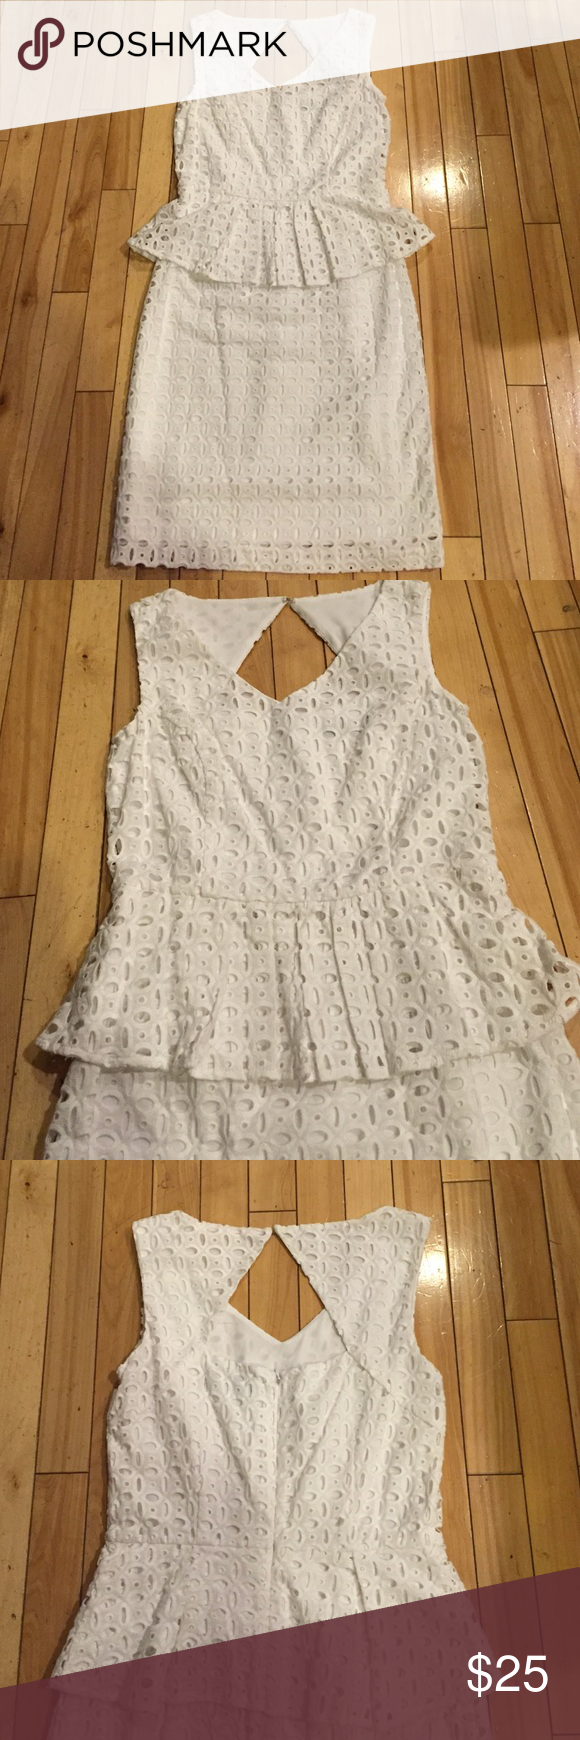 Ellen Tracy eyelet Peplum dress Cute and comfortable dress. Keyhole back with zipper. Fully lined. 100% cotton. Perfect condition! Ellen Tracy Dresses Midi